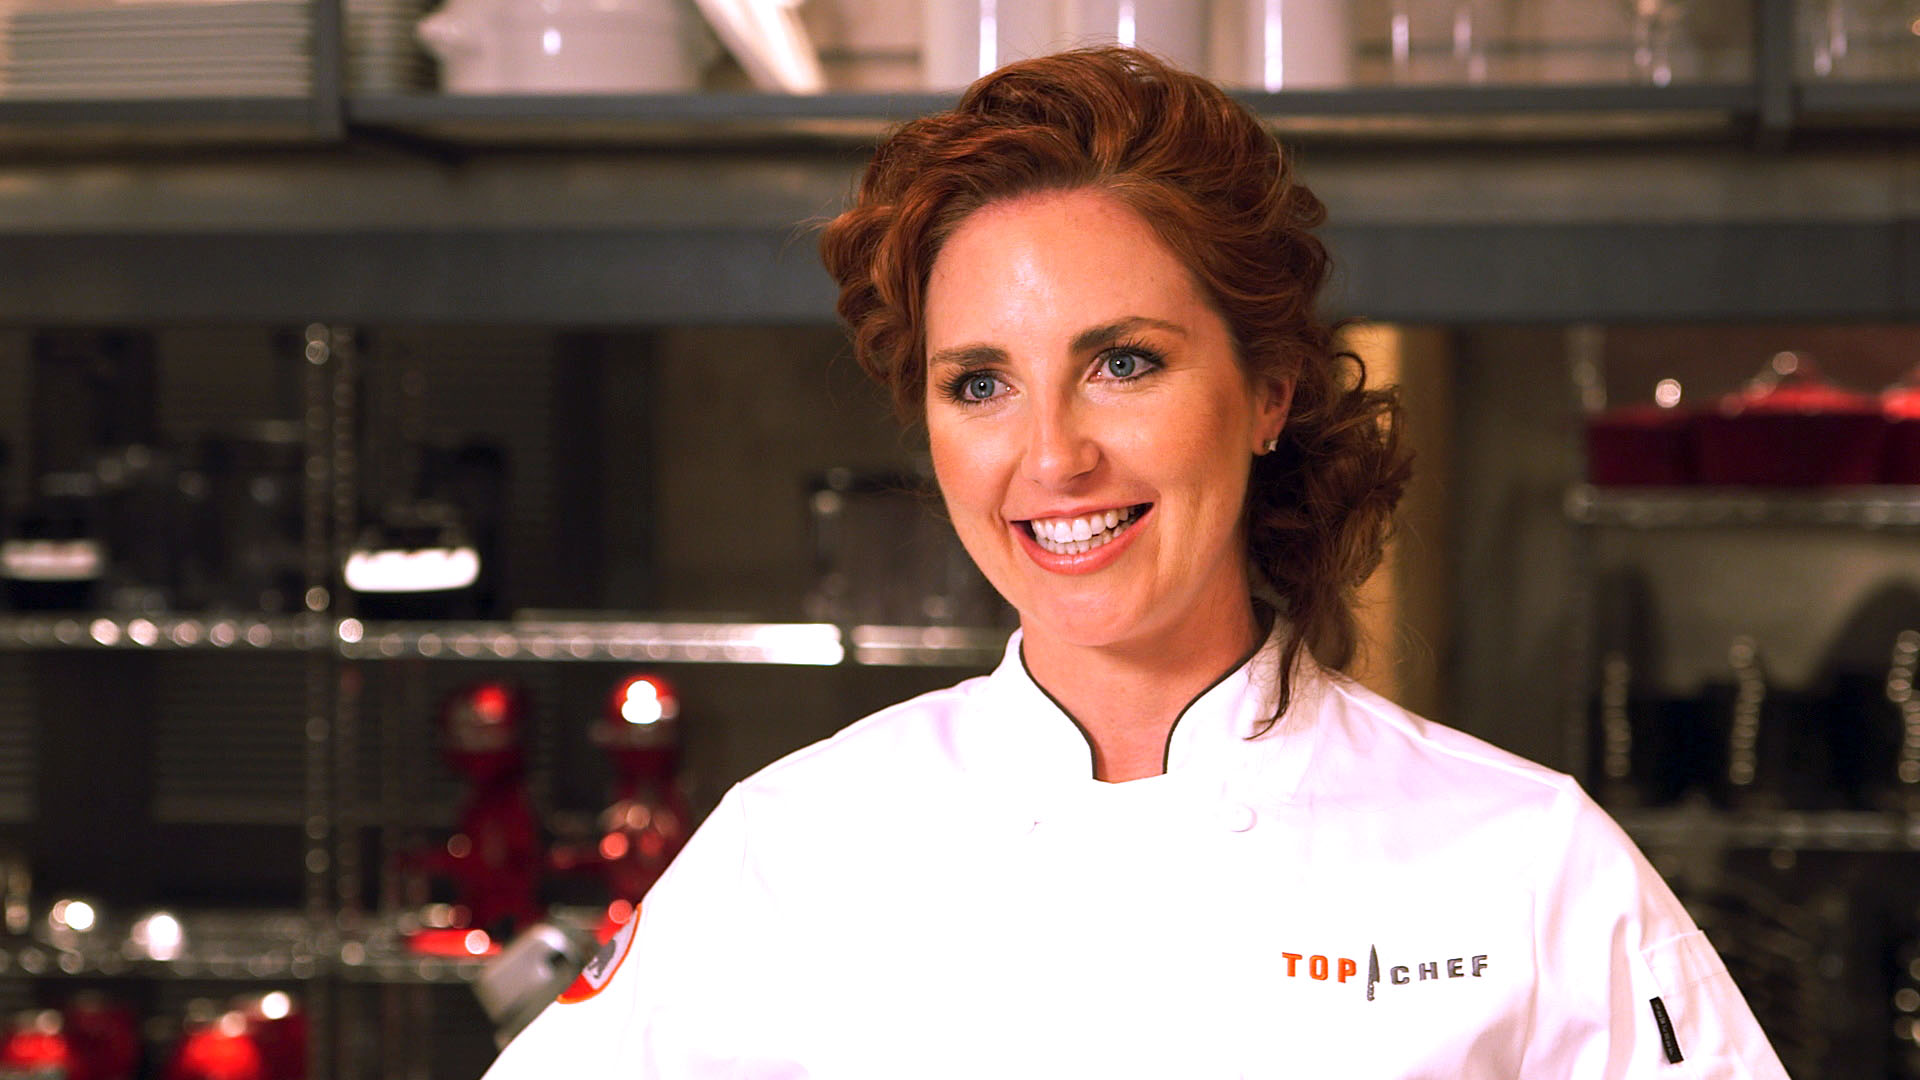 Top Chef 13: Meet Renee Kelly